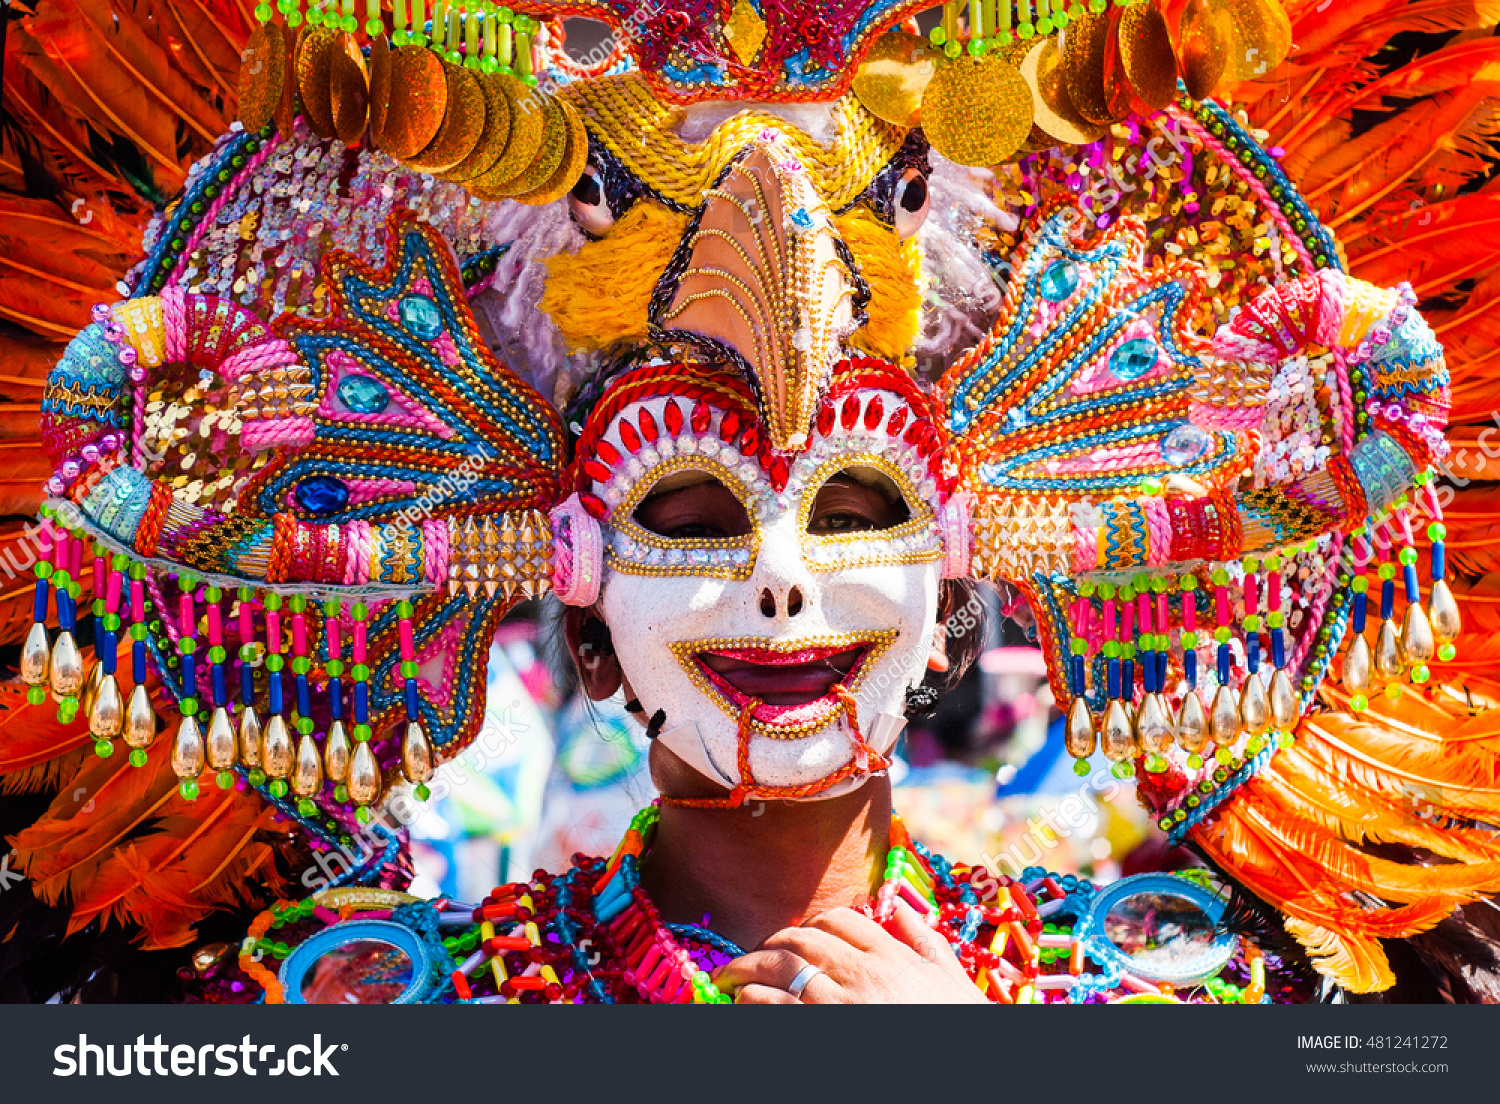 Parade of colorful smiling mask at Masskara Festival Bacolod City Philippines